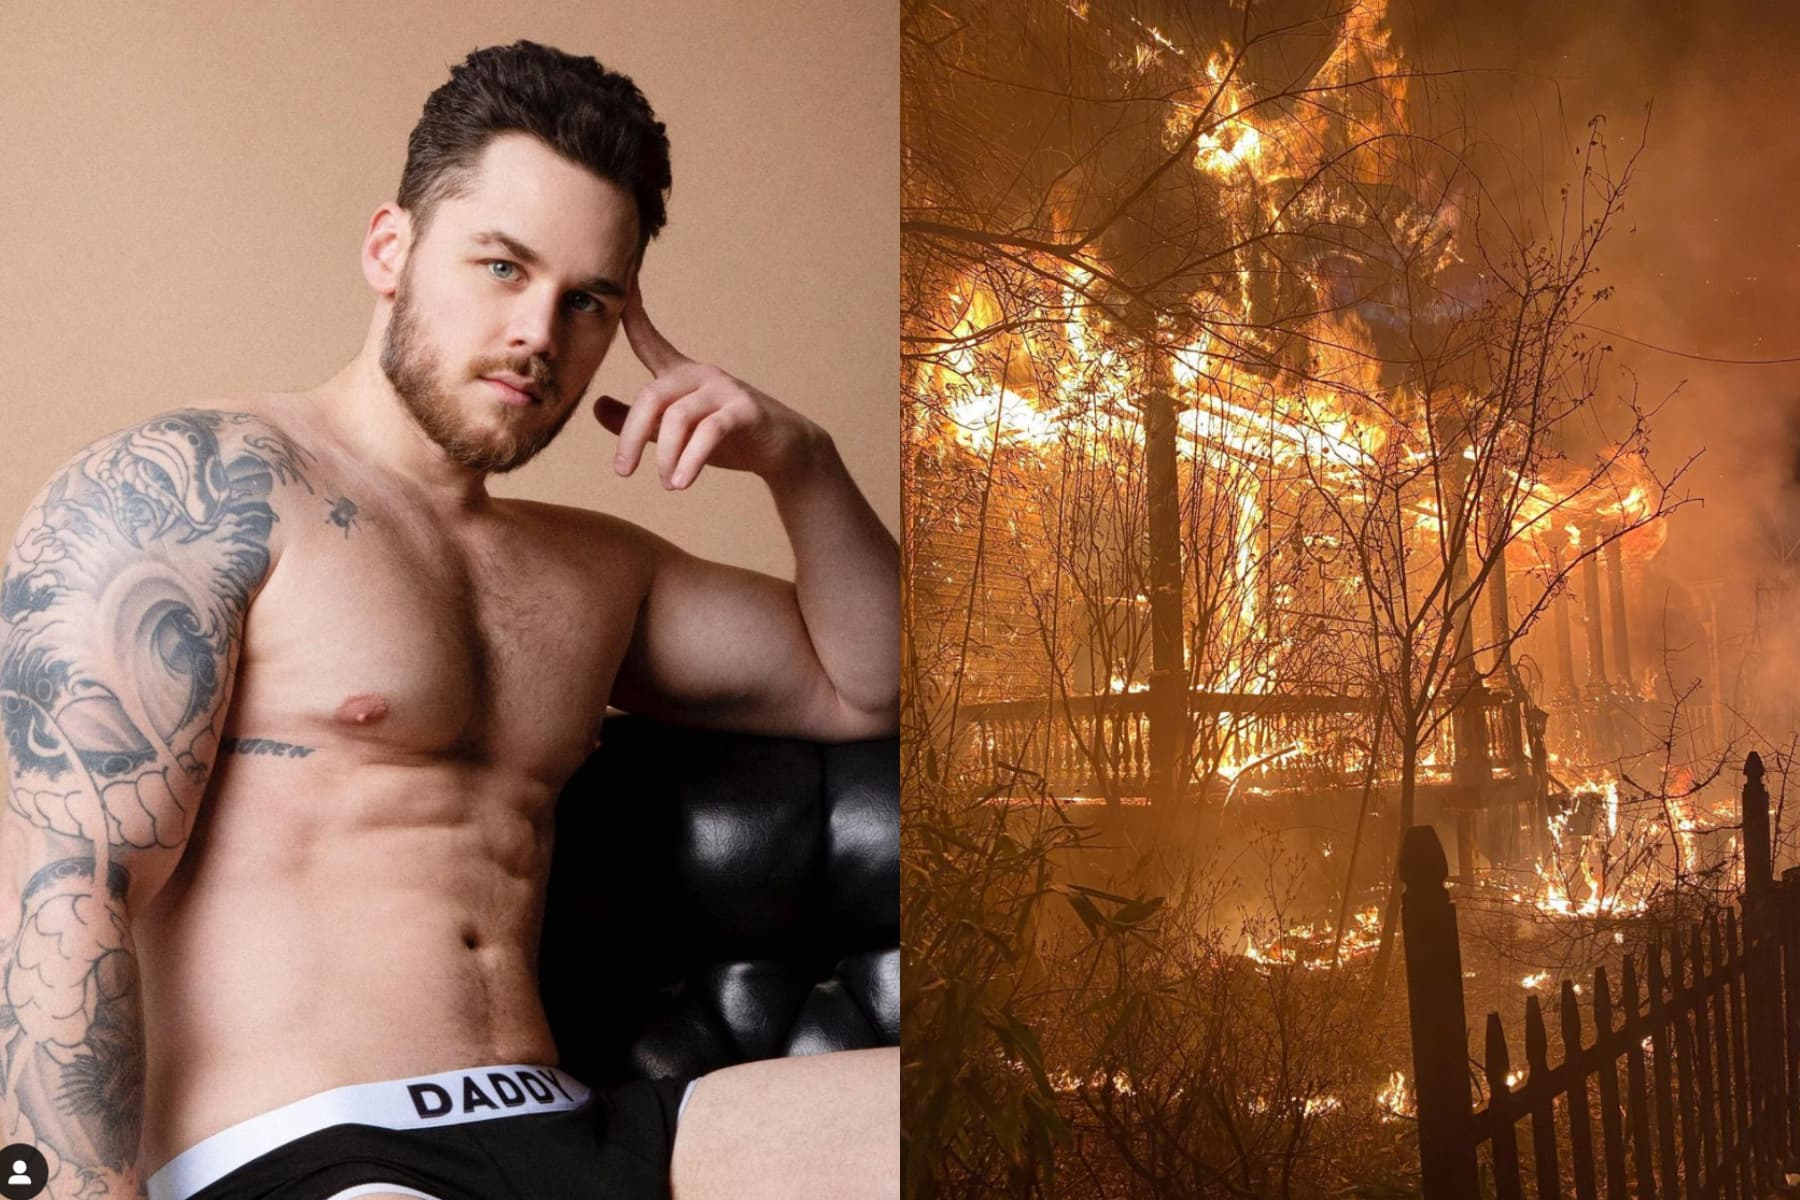 Gay adult performer Matthew Camp's home set on fire in suspected arson attack